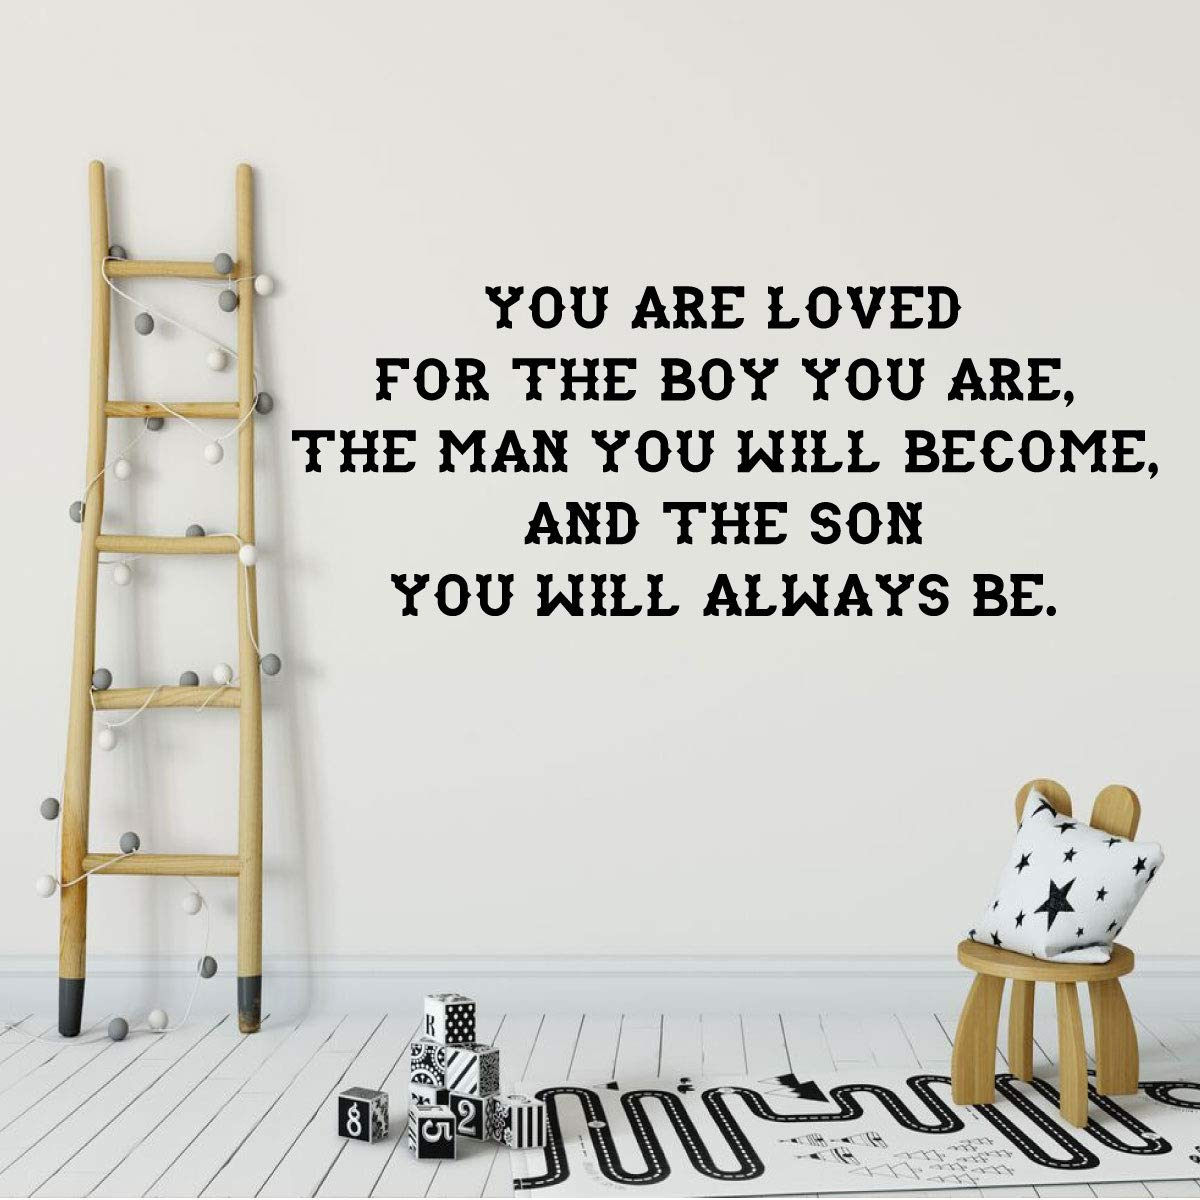 You Are Loved Inspirational Quote Vinyl Wall Decal Quote for Boy Bedroom